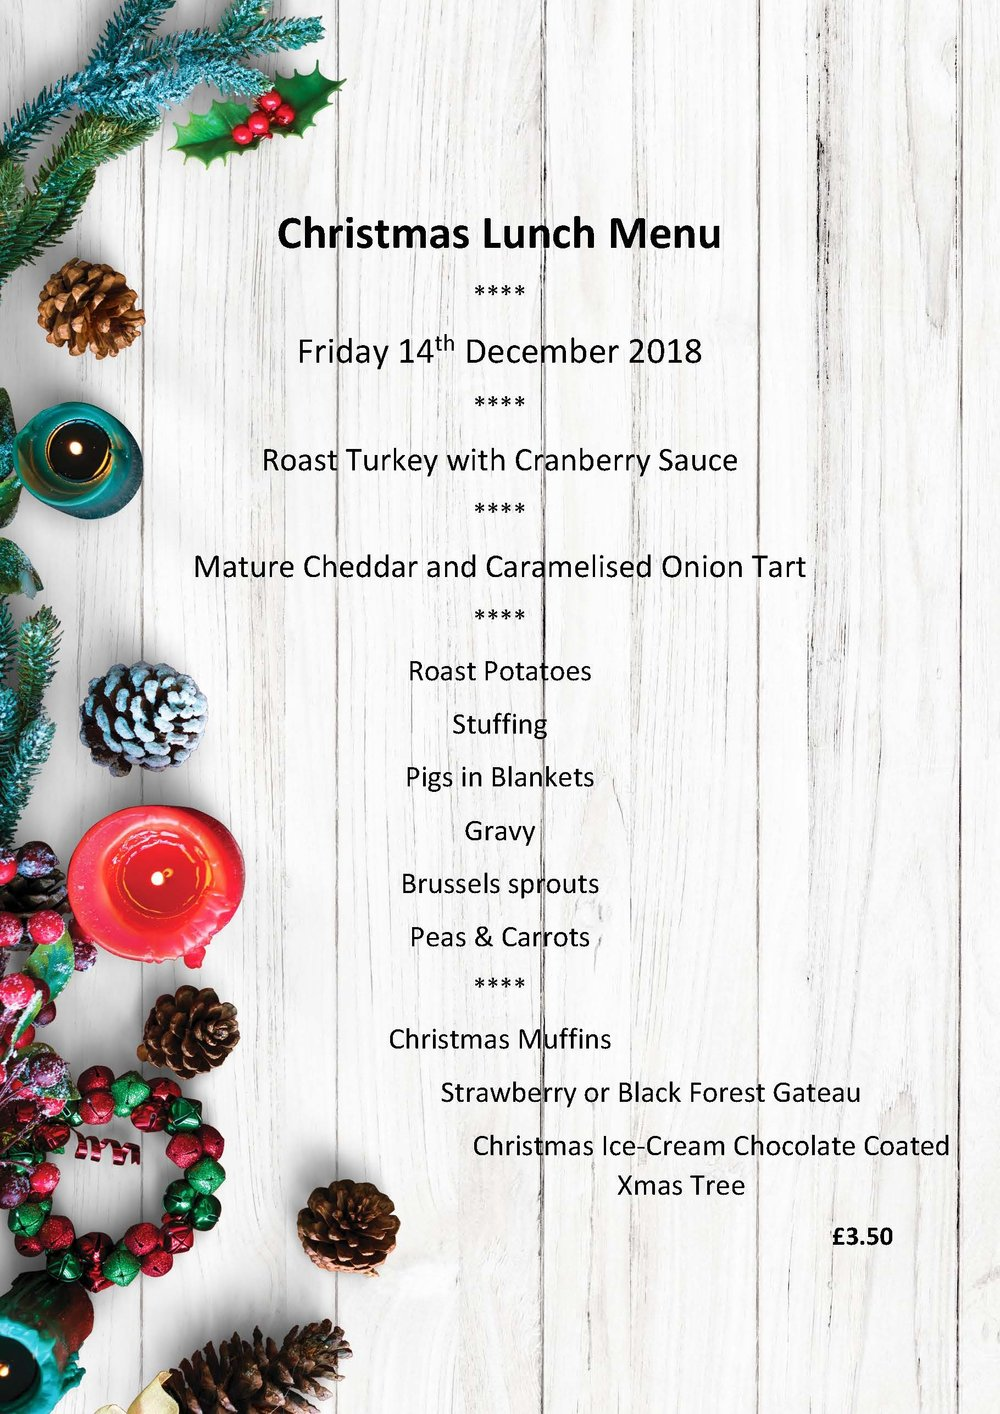 Christmas Menu 2018 - Display.jpg